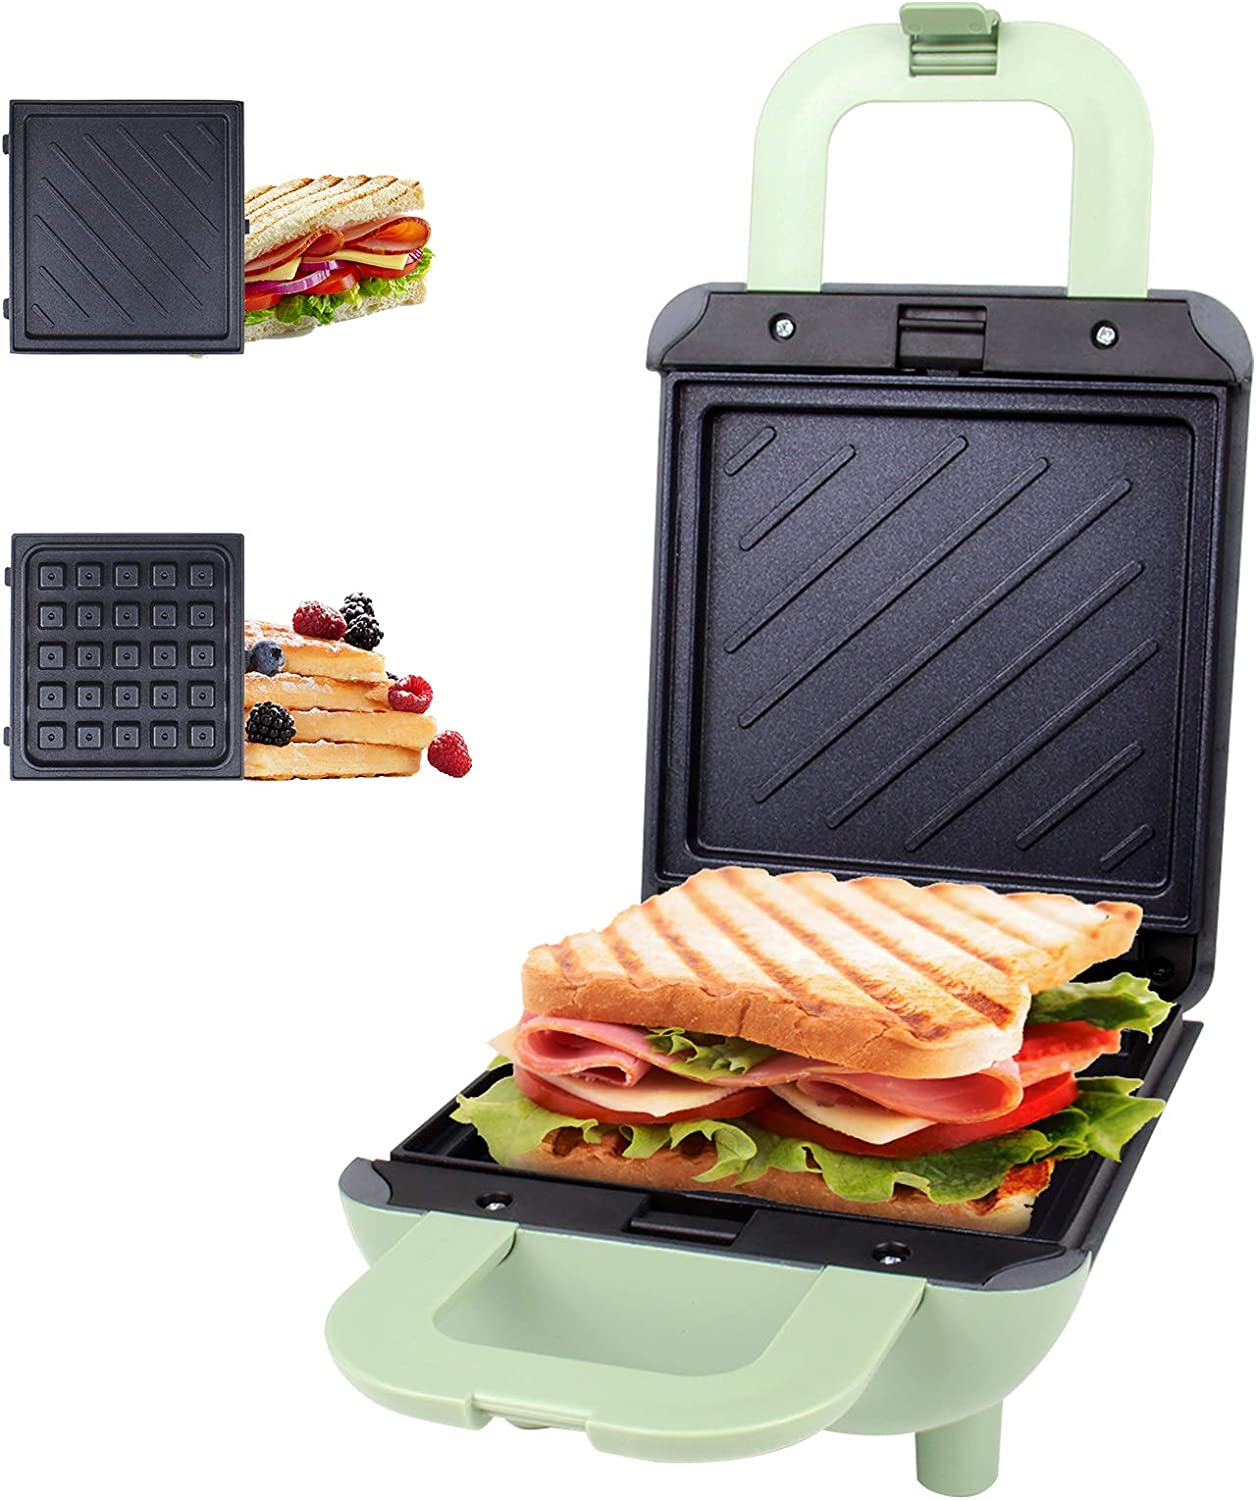 Mini 2 in 1 Waffle Maker Sandwich Toaster with Dual Side Heating Removable Non-stick Coating Plates, Cool Touch Locking Handle 600W